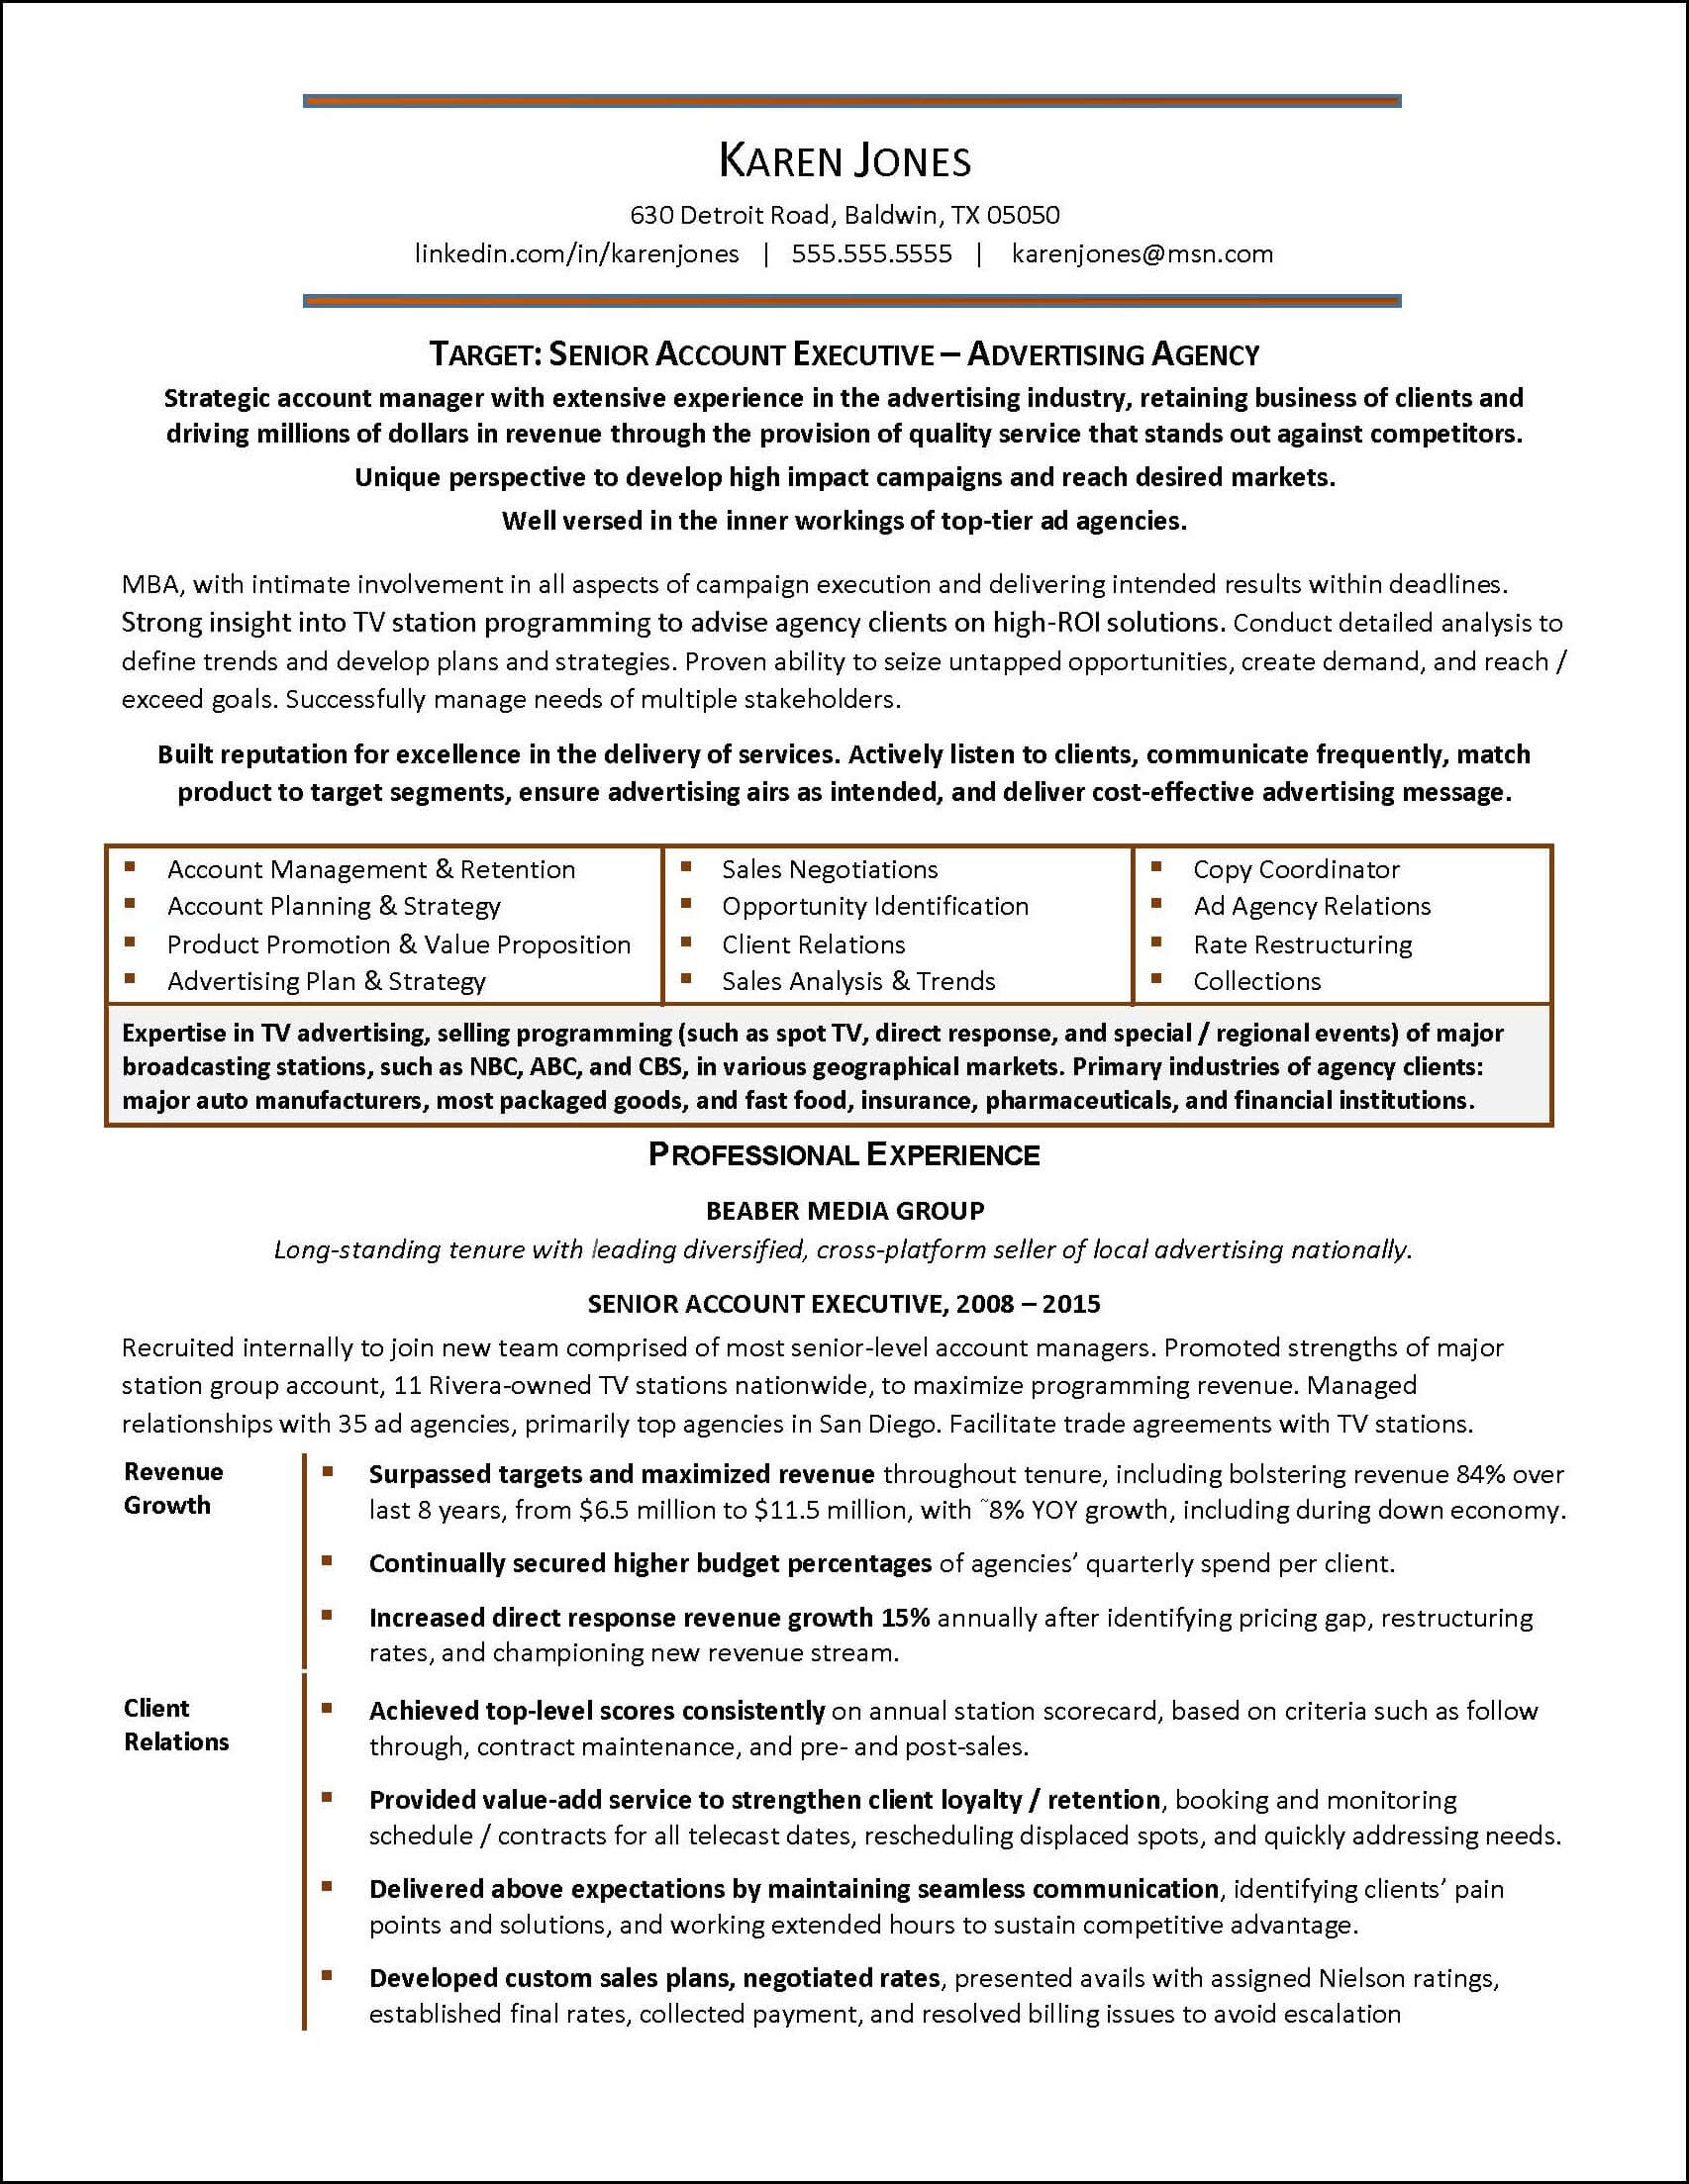 advertising agency example resume example resume for an account executive in an advertising agency